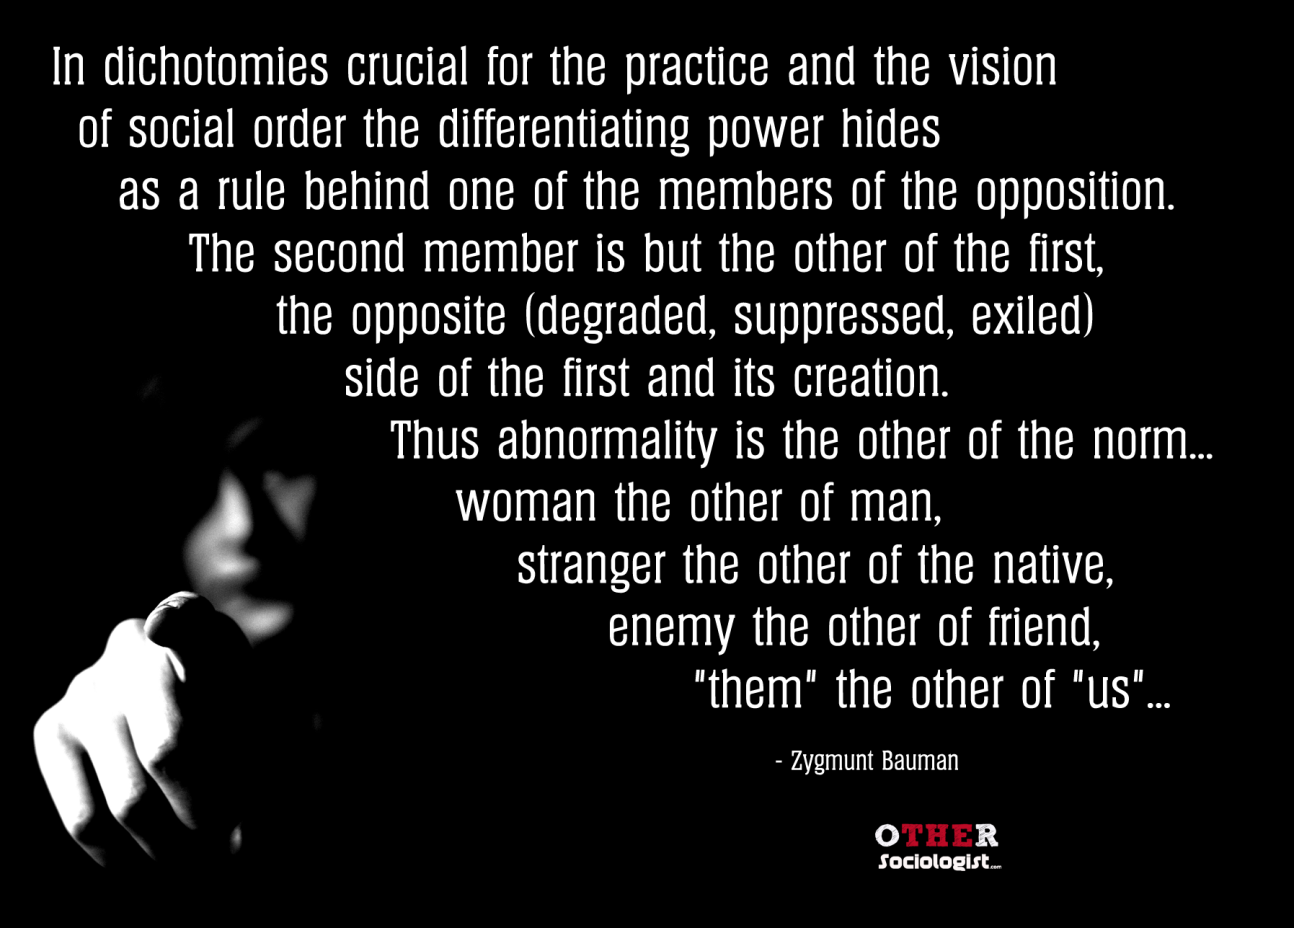 Zygmunt Bauman On Otherness Sociological Imagination Flirting Quotes For Her Intercultural Communication